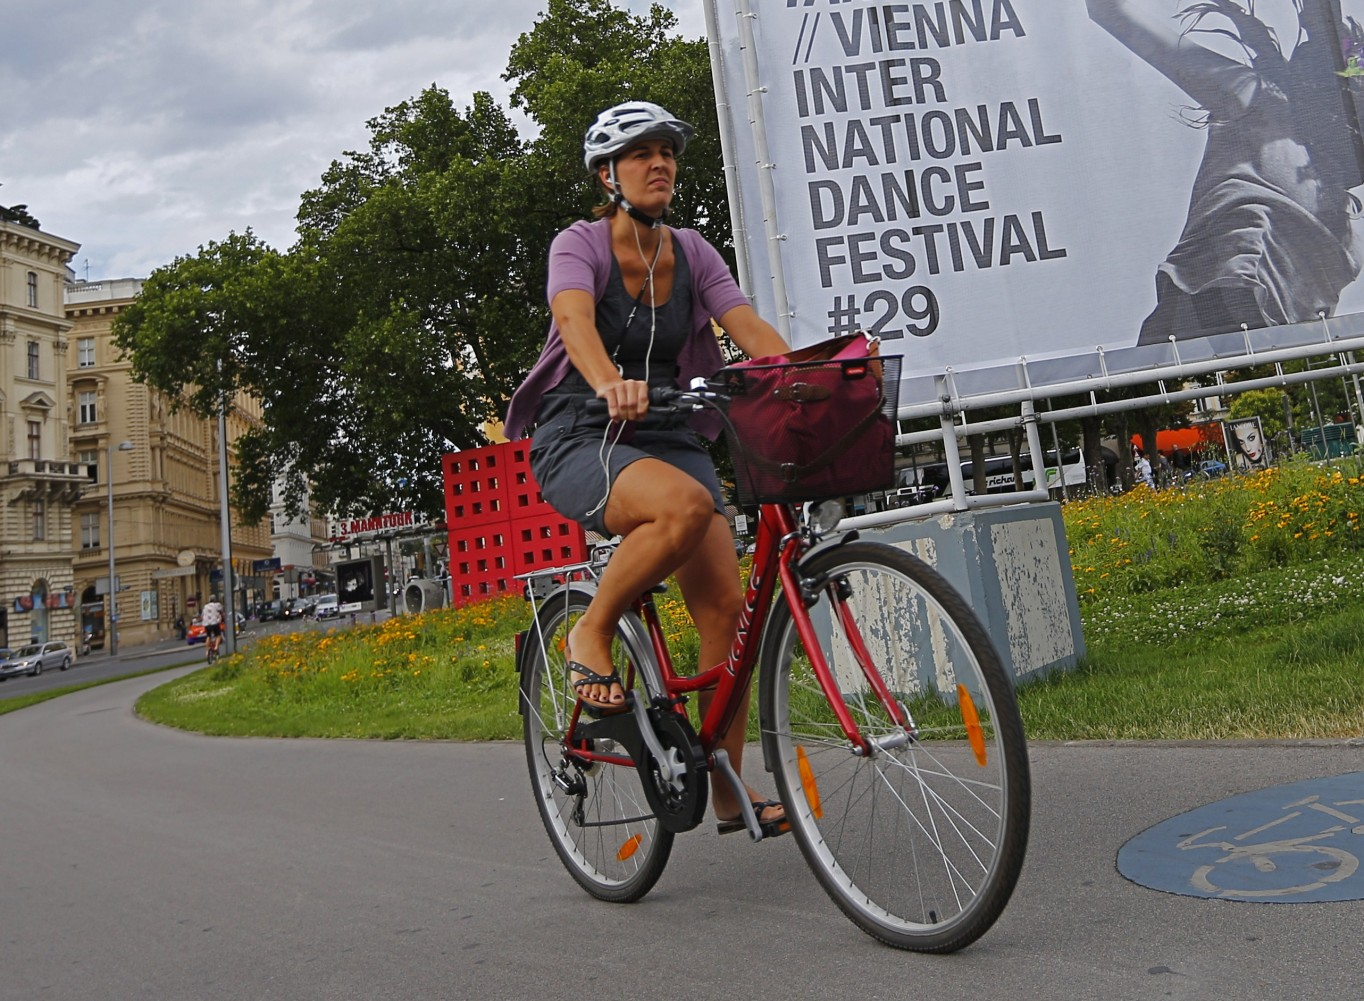 A woman rides a bicycle past a sign advertising the 29th Impulstanz Festival in Vienna on July 11, 2012. Dance in all its forms, from performances to workshops, lectures and parties, takes over Vienna for a month starting on July 12, 2012, as the Austrian capital welcomes the 29th Impulstanz Festival. AFP PHOTO / ALEXANDER KLEIN        (Photo credit should read ALEXANDER KLEIN/AFP/GettyImages)